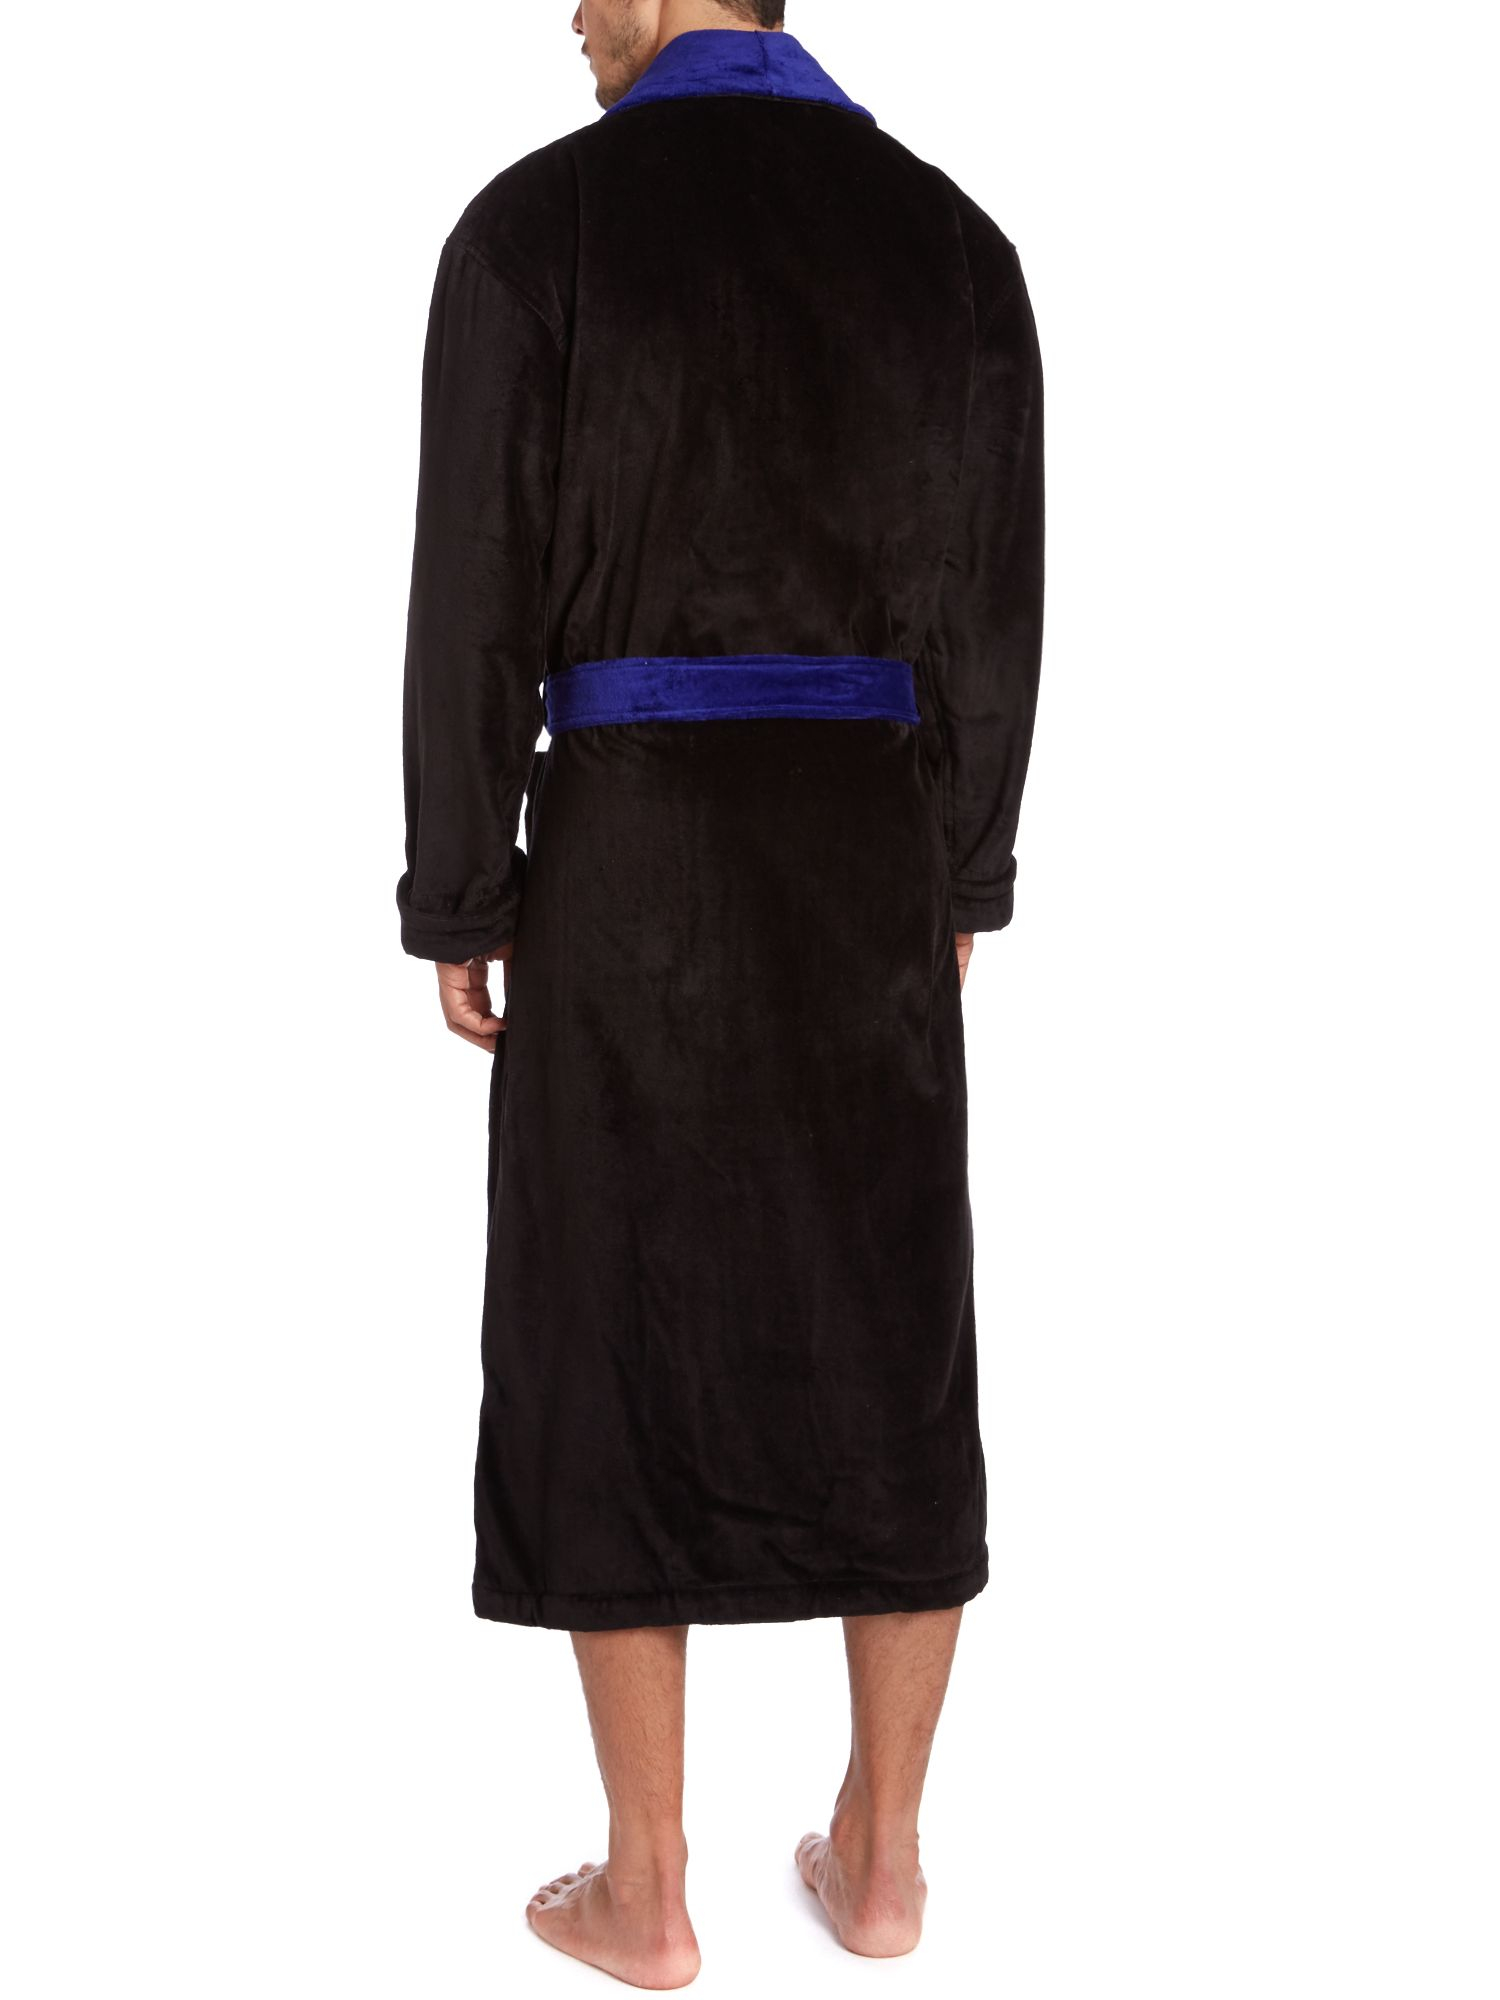 lyst polo ralph lauren cotton velour robe in black for men. Black Bedroom Furniture Sets. Home Design Ideas